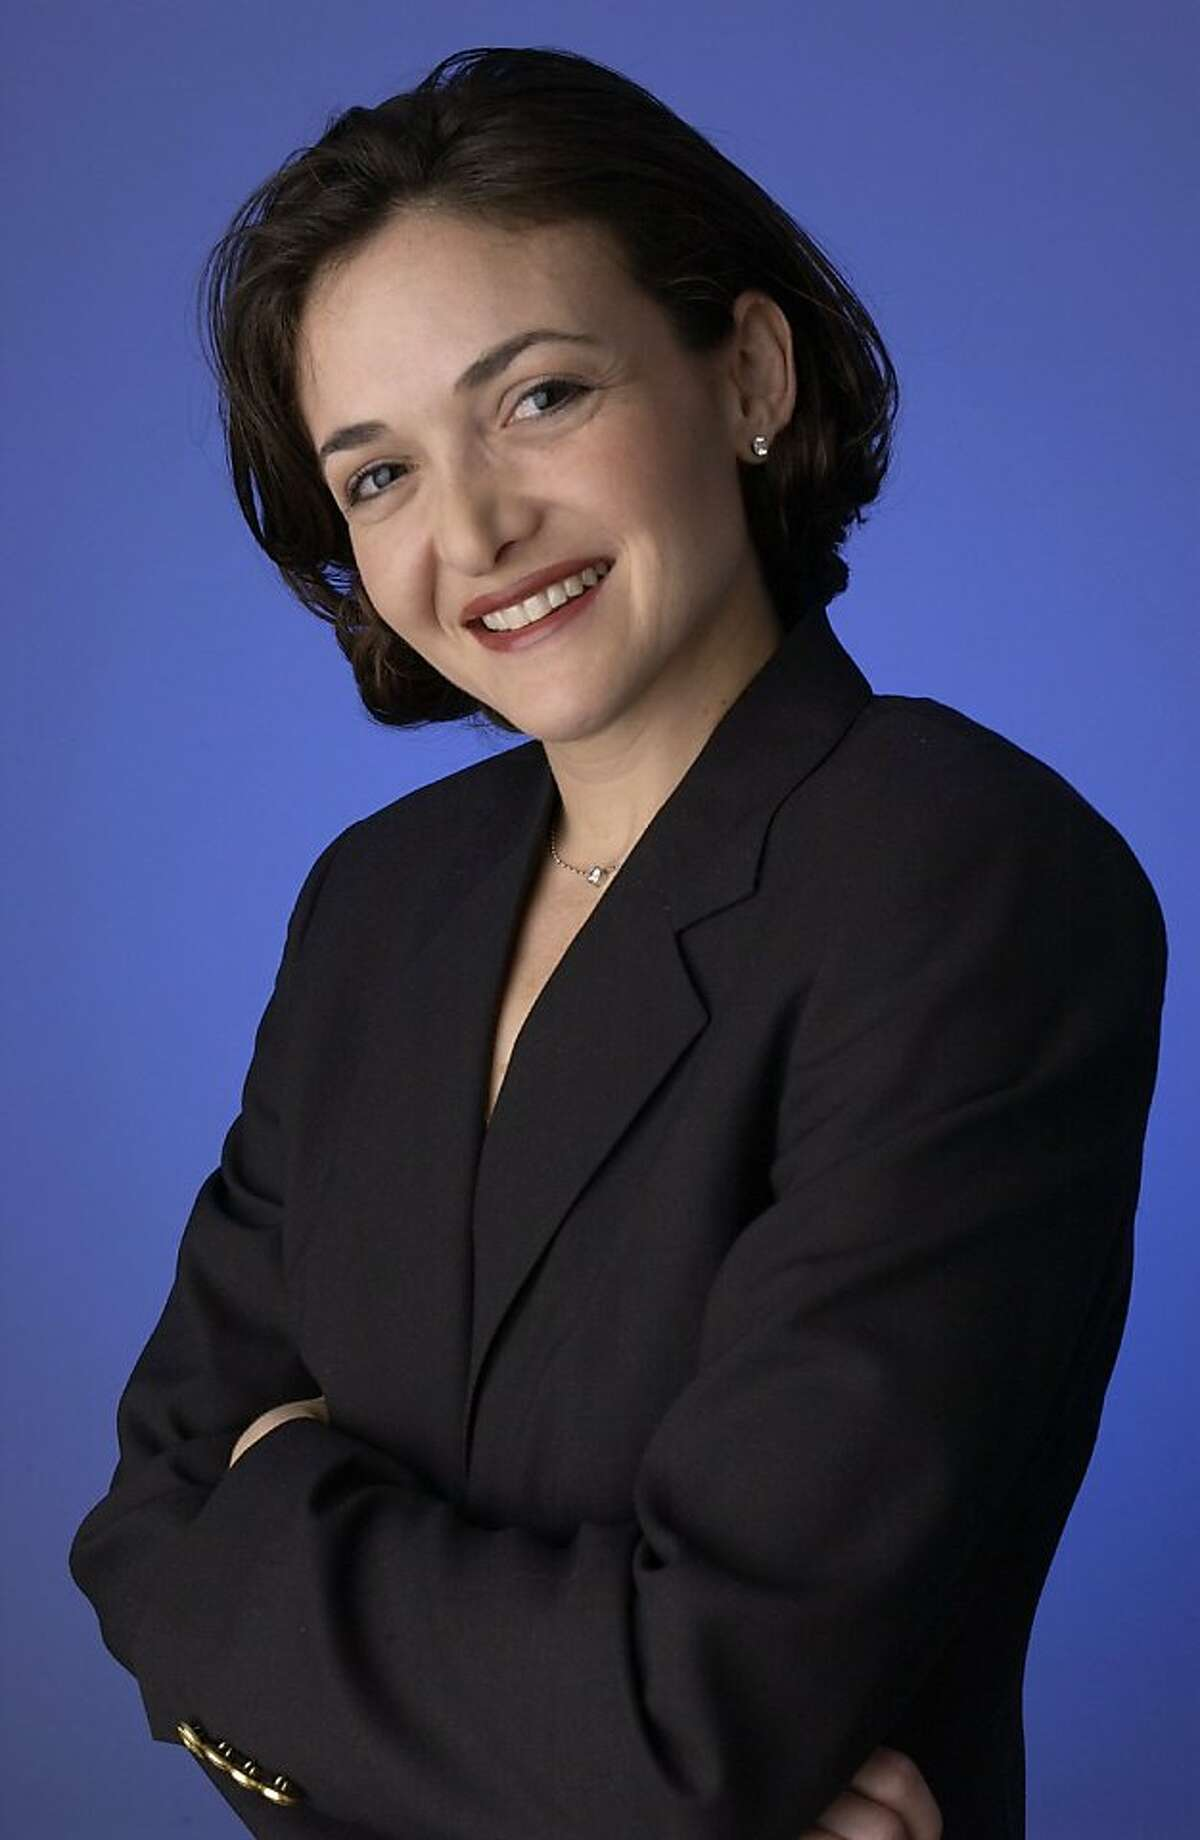 This undated photo provided by Google shows former Google executive Sheryl Sandberg. Facebook Inc. has raided Google Inc. to hire a new chief operating officer, providing the popular online social network with more seasoned management and advertising savvy as it strives to make more money without alienating its audience. Sandberg's defection from Google, announced Tuesday March 4, 2008, represents a coup for Facebook just three months after it suffered a humiliating setback in its effort to inject more commercialism into its Web site. (AP Photo/Google) ** NO SALES ** Ran on: 03-05-2008 Sheryl Sandberg will become chief operating officer of the popular social-networking site.